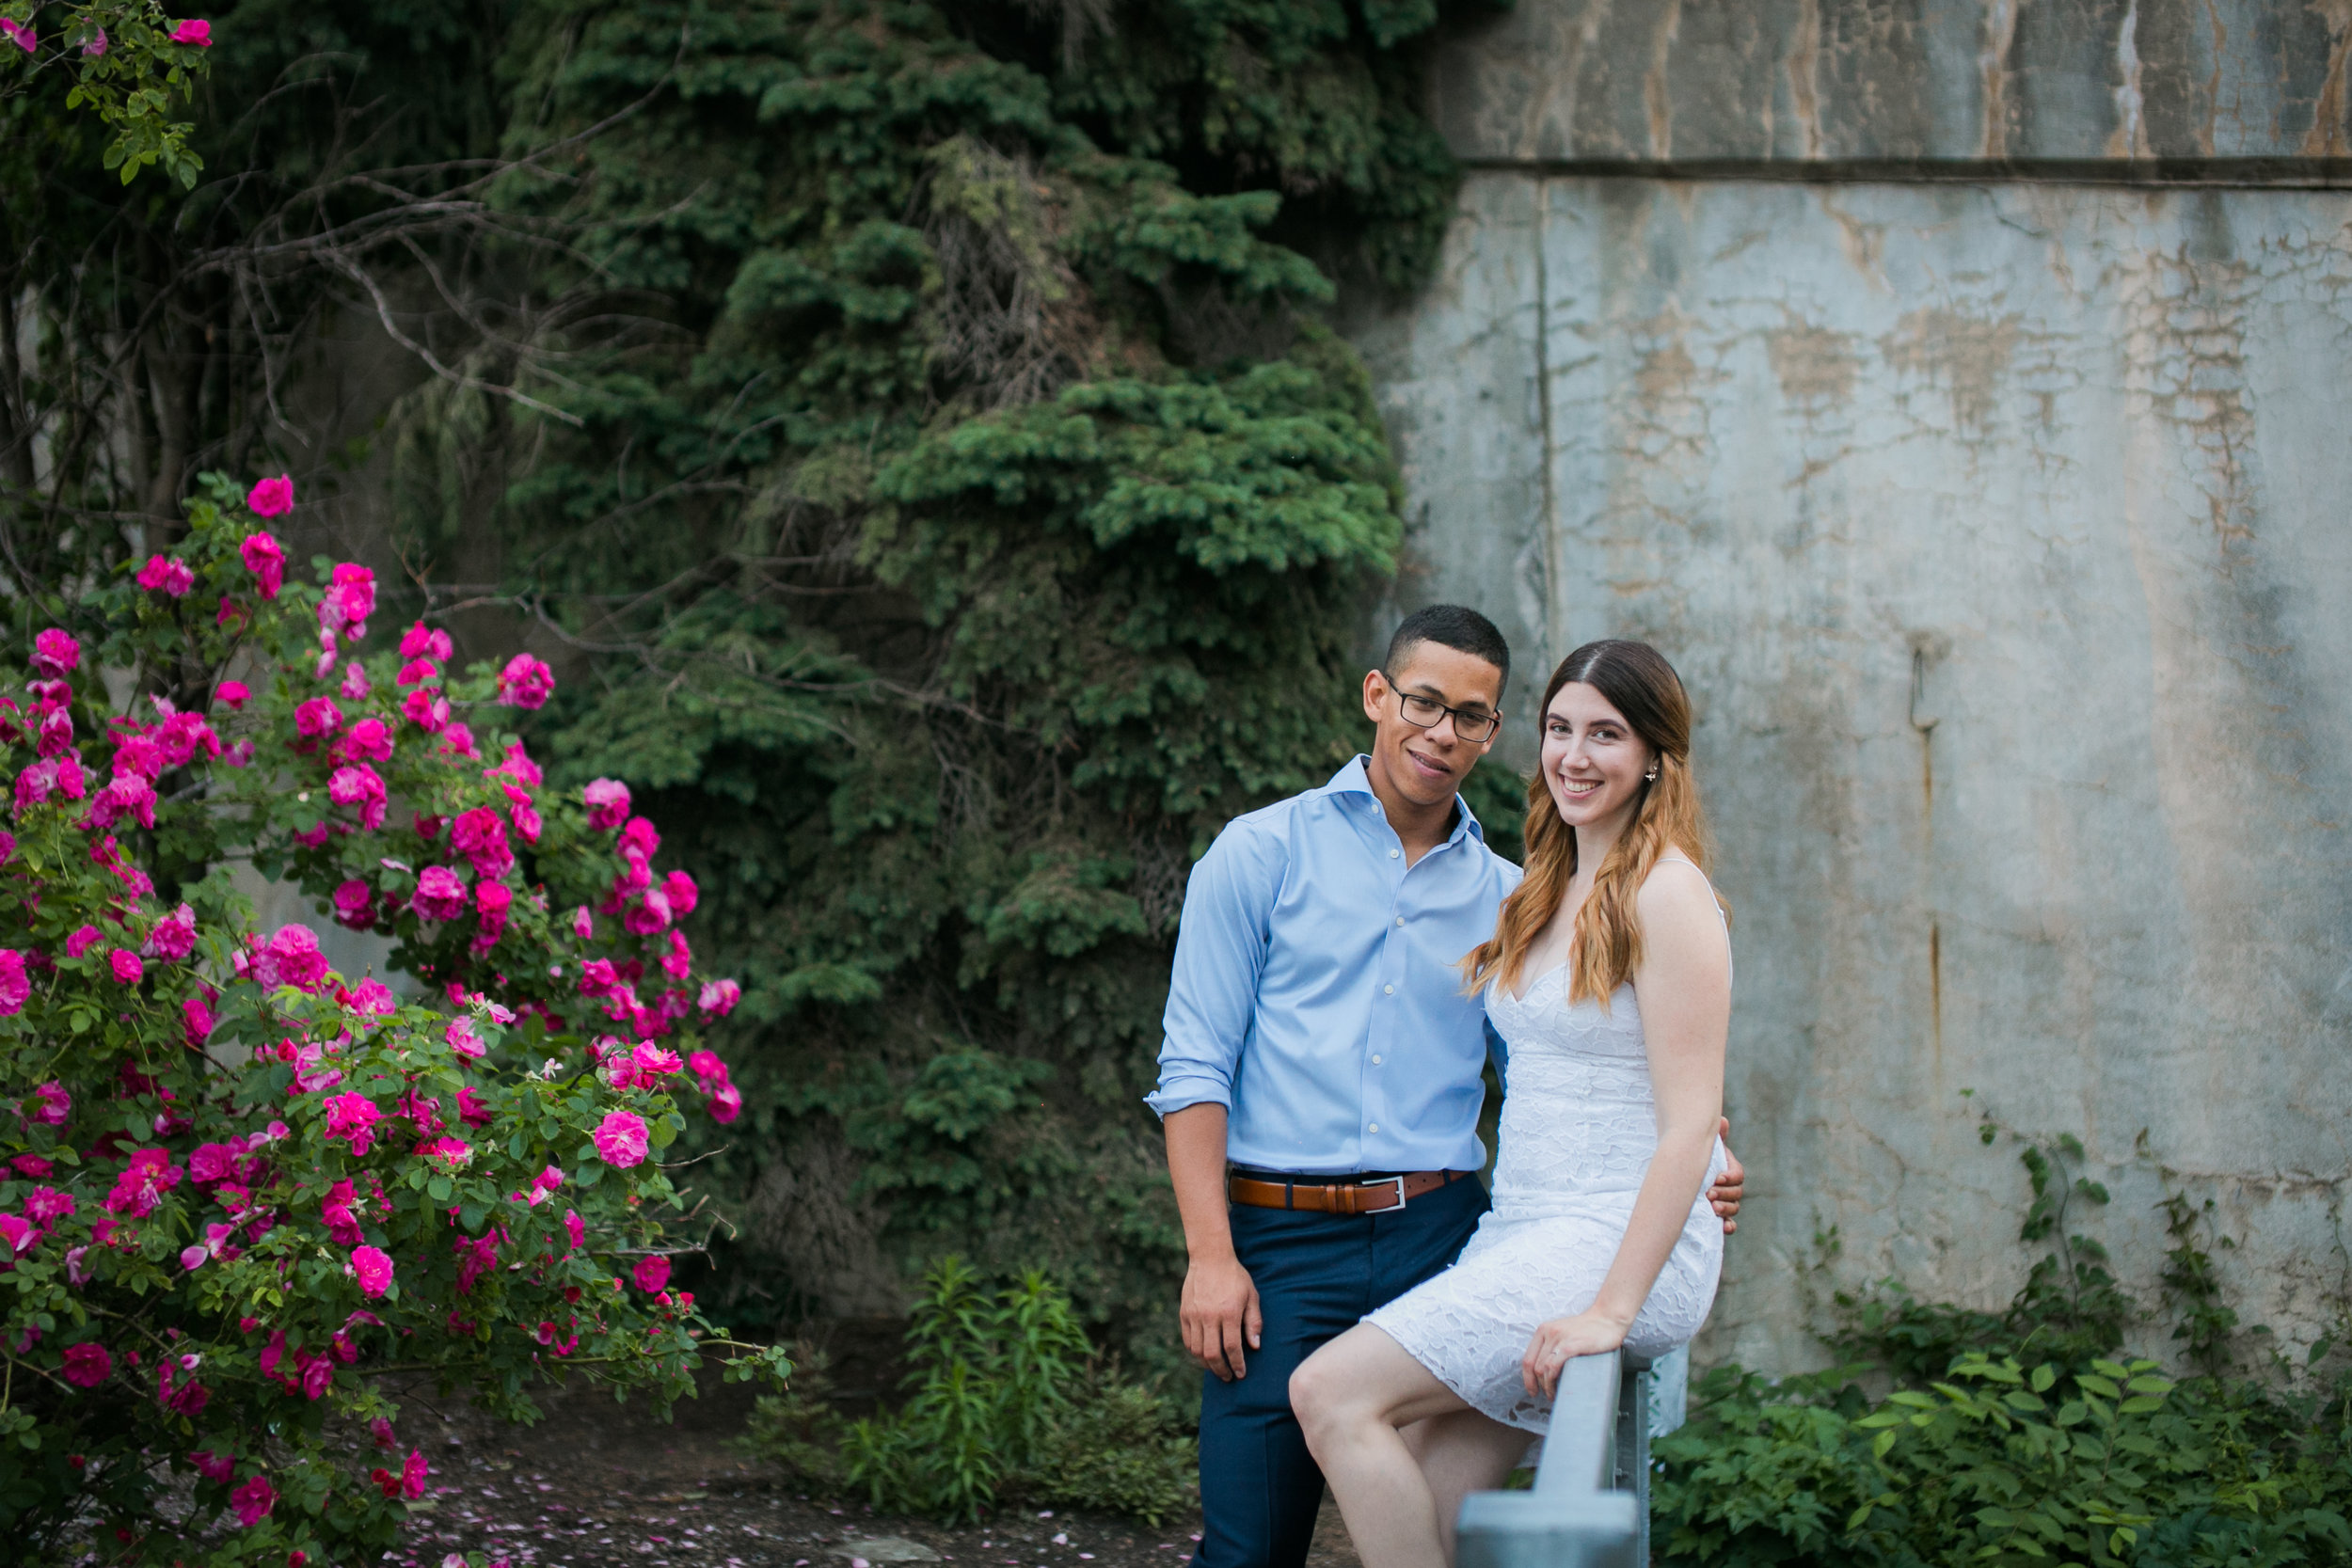 Vieux Old quebec engagement photos at sunset by Ness Photography.13.jpg